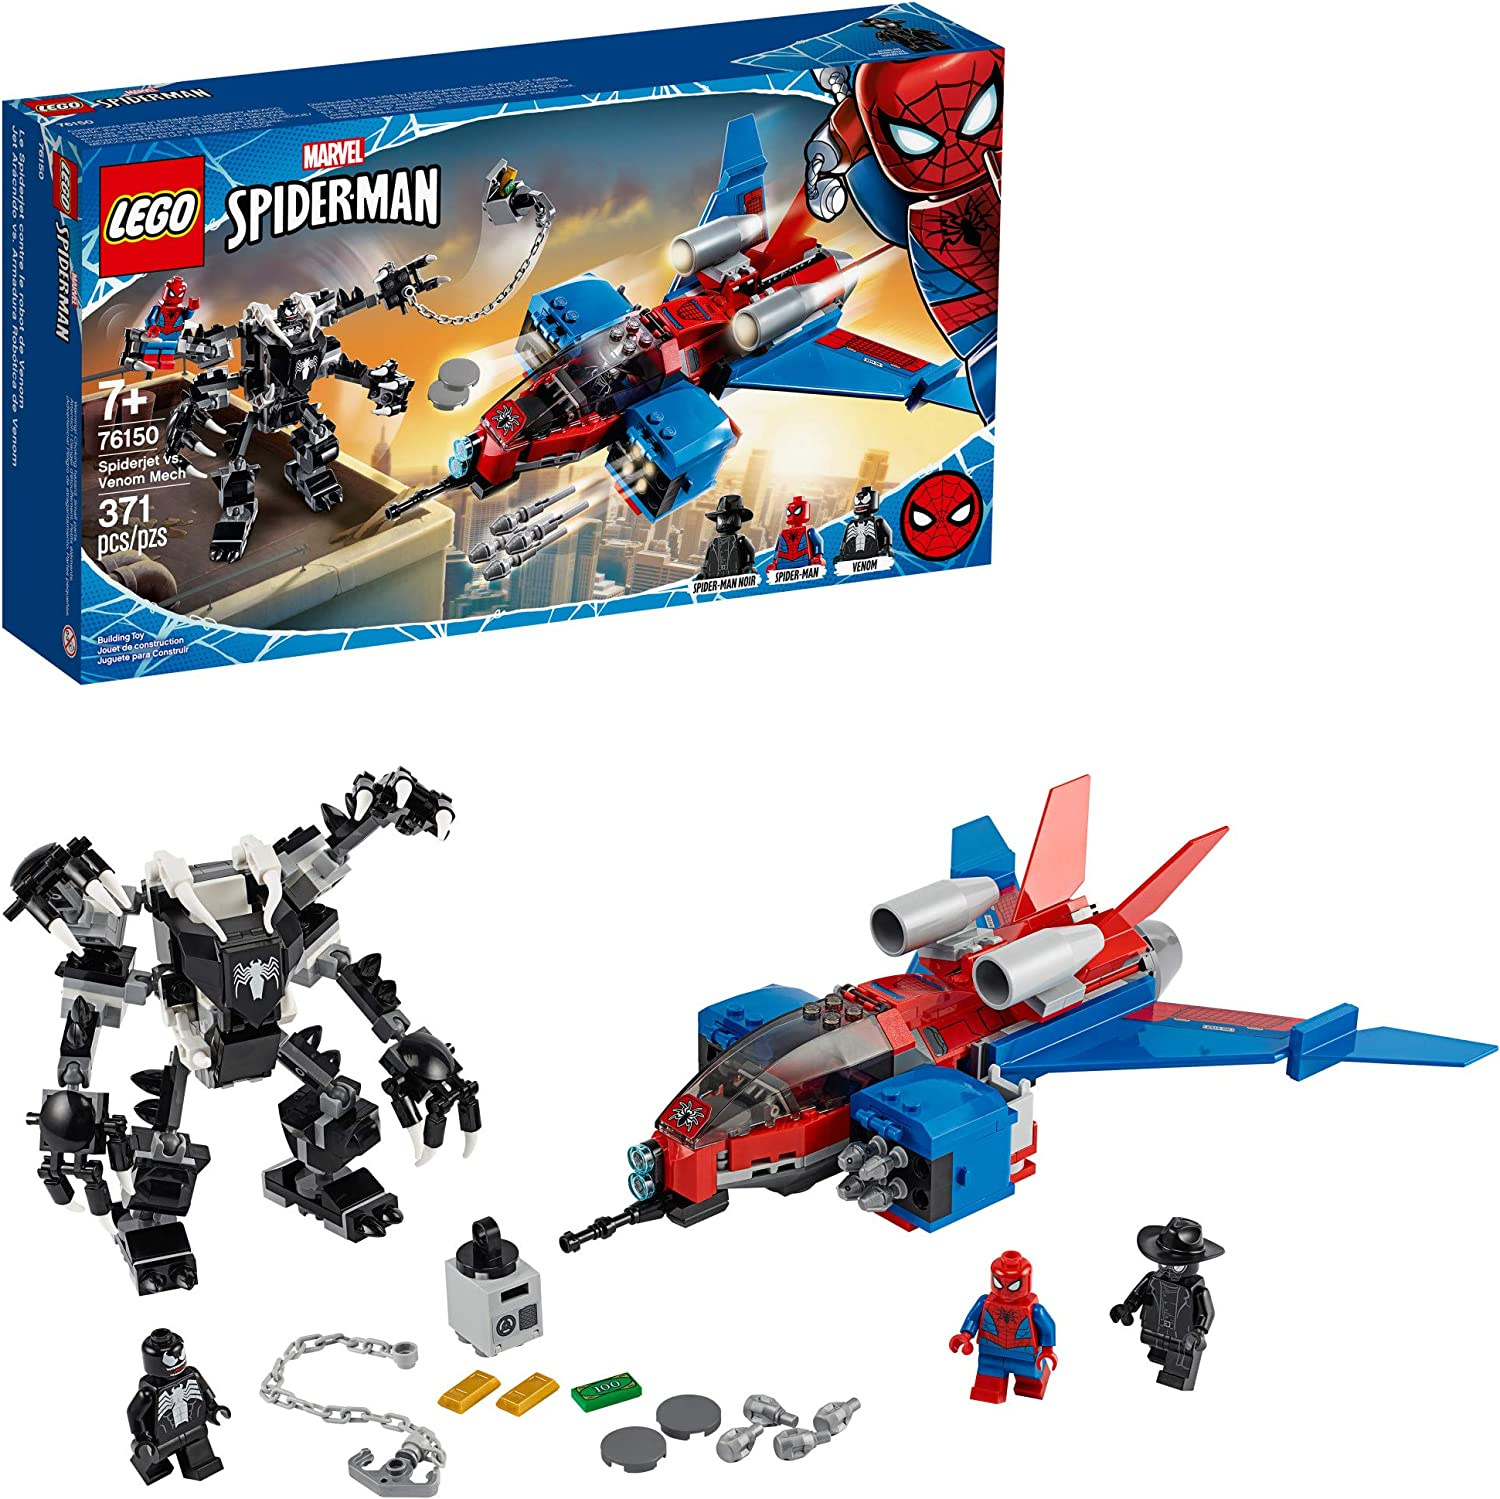 LEGO Marvel Spider-Man Spider-Jet vs Venom Mech 76150 Superhero Gift for Kids with Minifigures, Mech and Plane, New 2020 (371 Pieces)